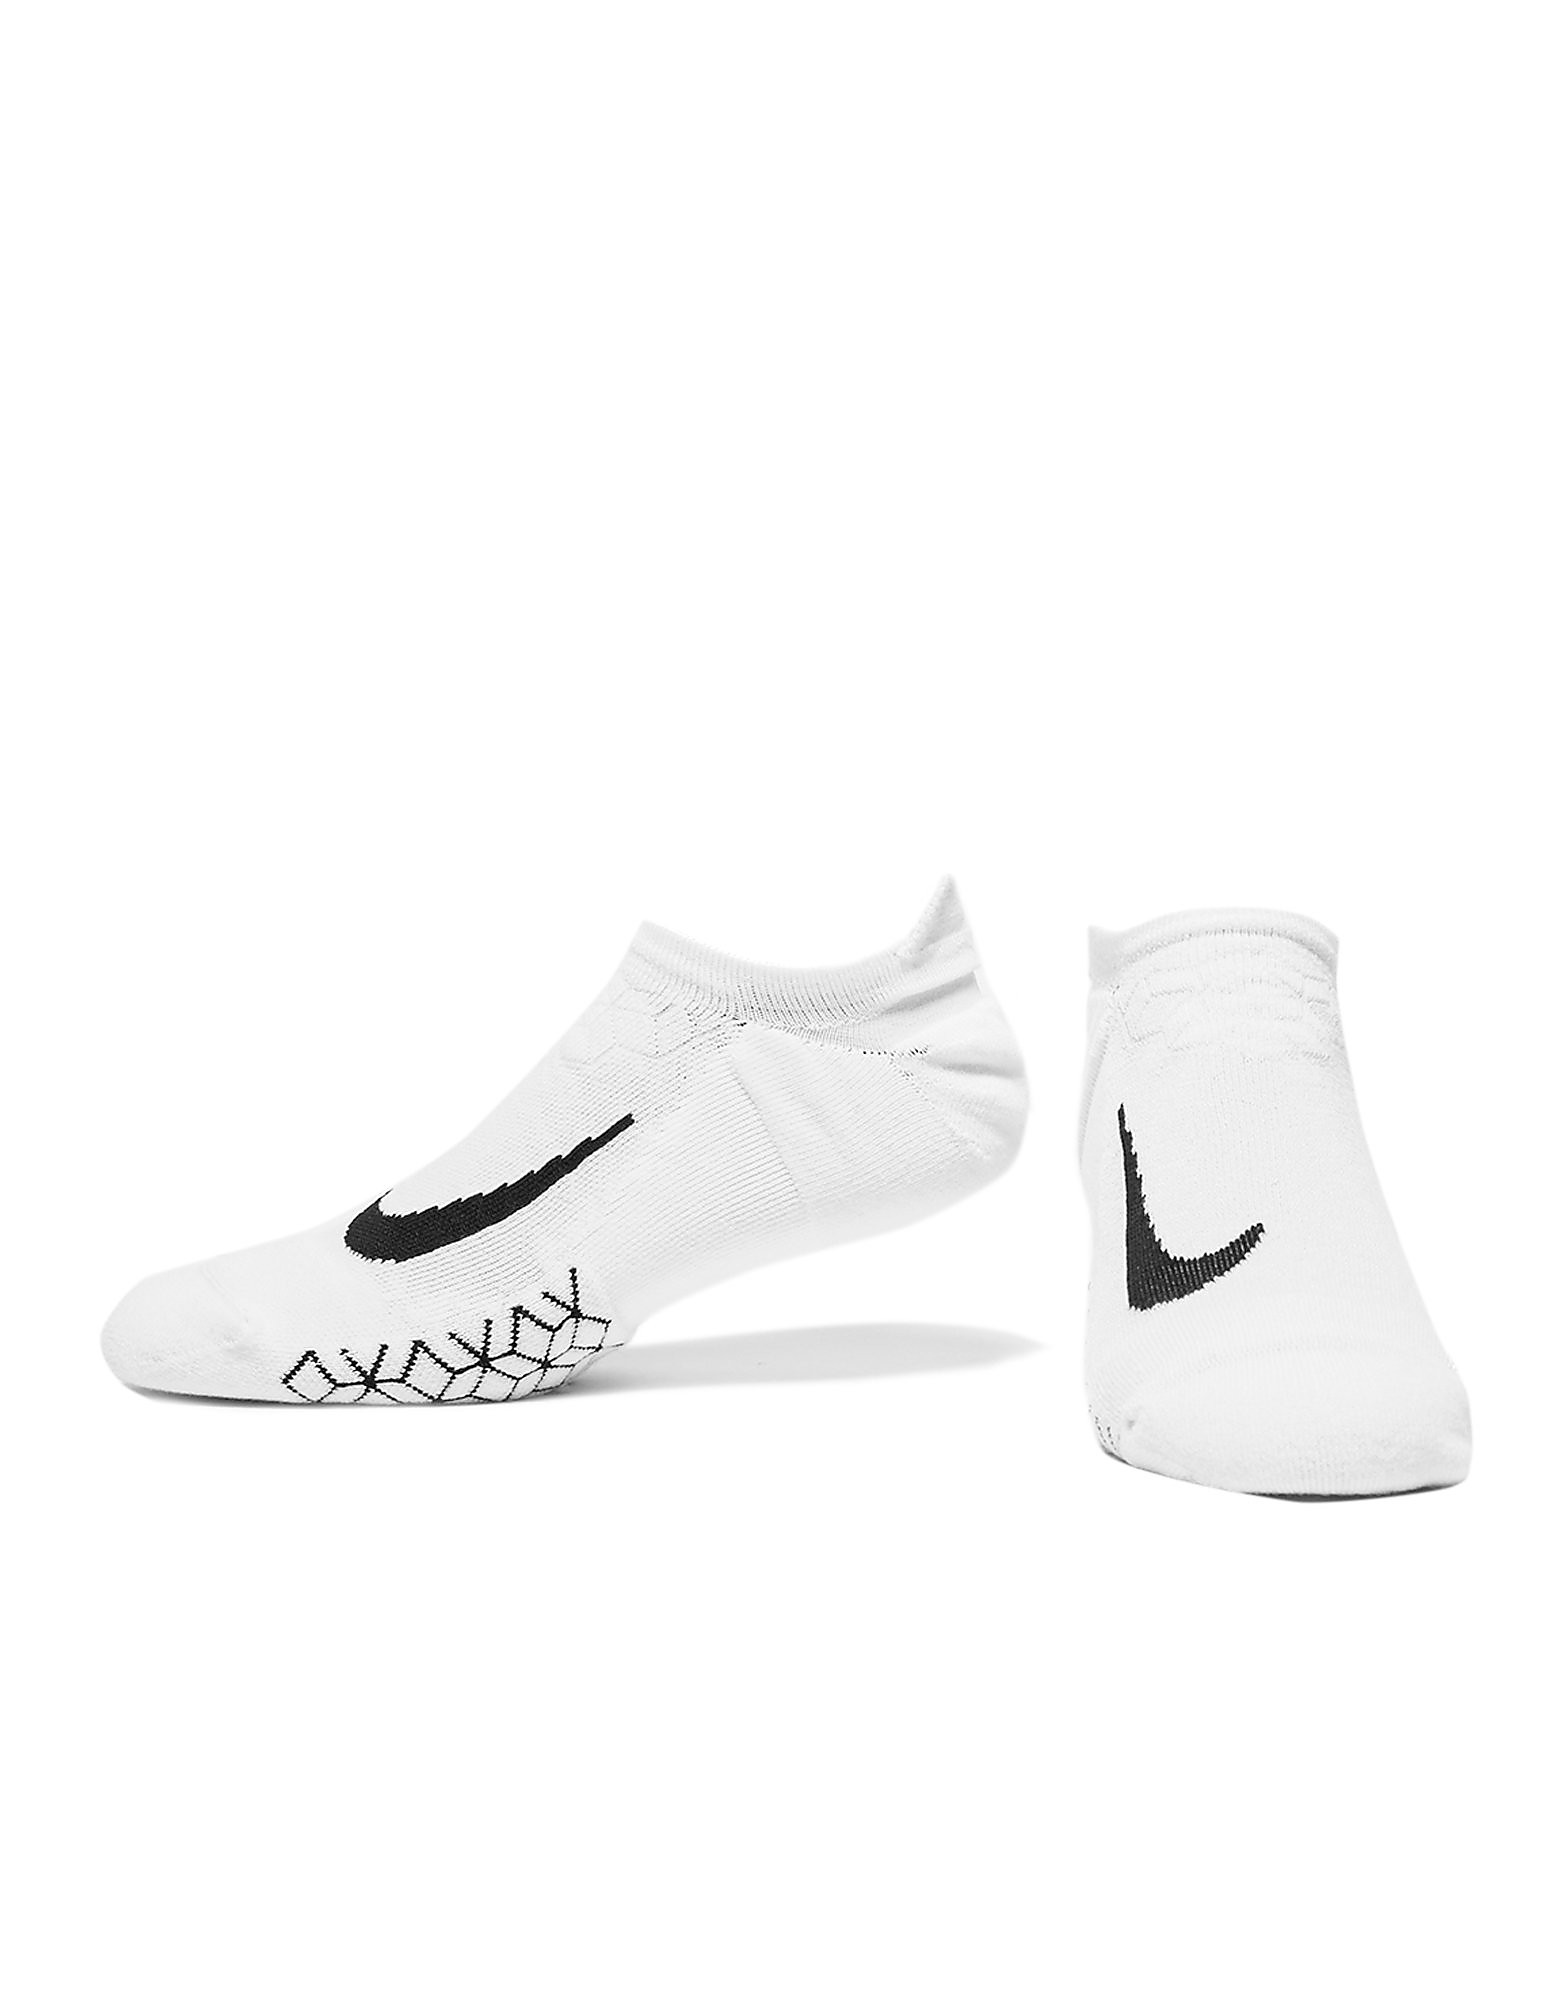 Nike calcetines invisibles Run Elite Cushioned